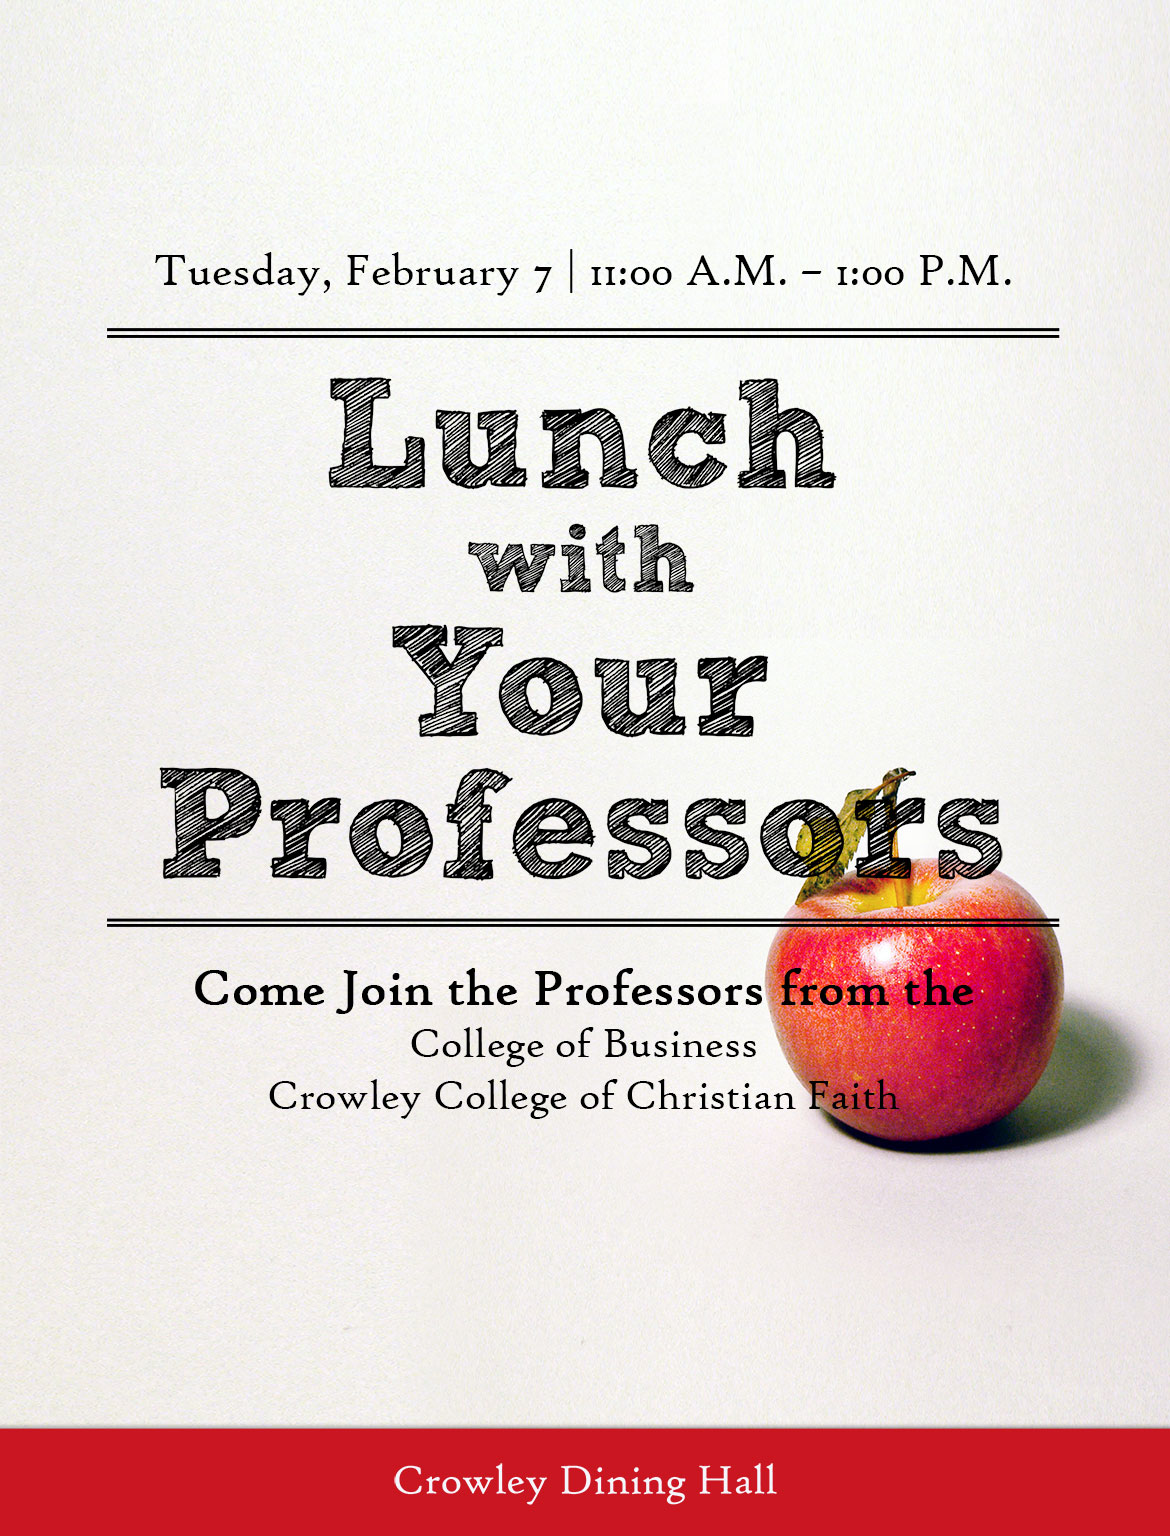 Lunch with Your Professors – Tuesday, December 6 at 11:00 A.M. – 1:00 P.M. - Come Join the Professors from the College of Professional Studies, Cook School of Leadership, and Graduate School of Ministry